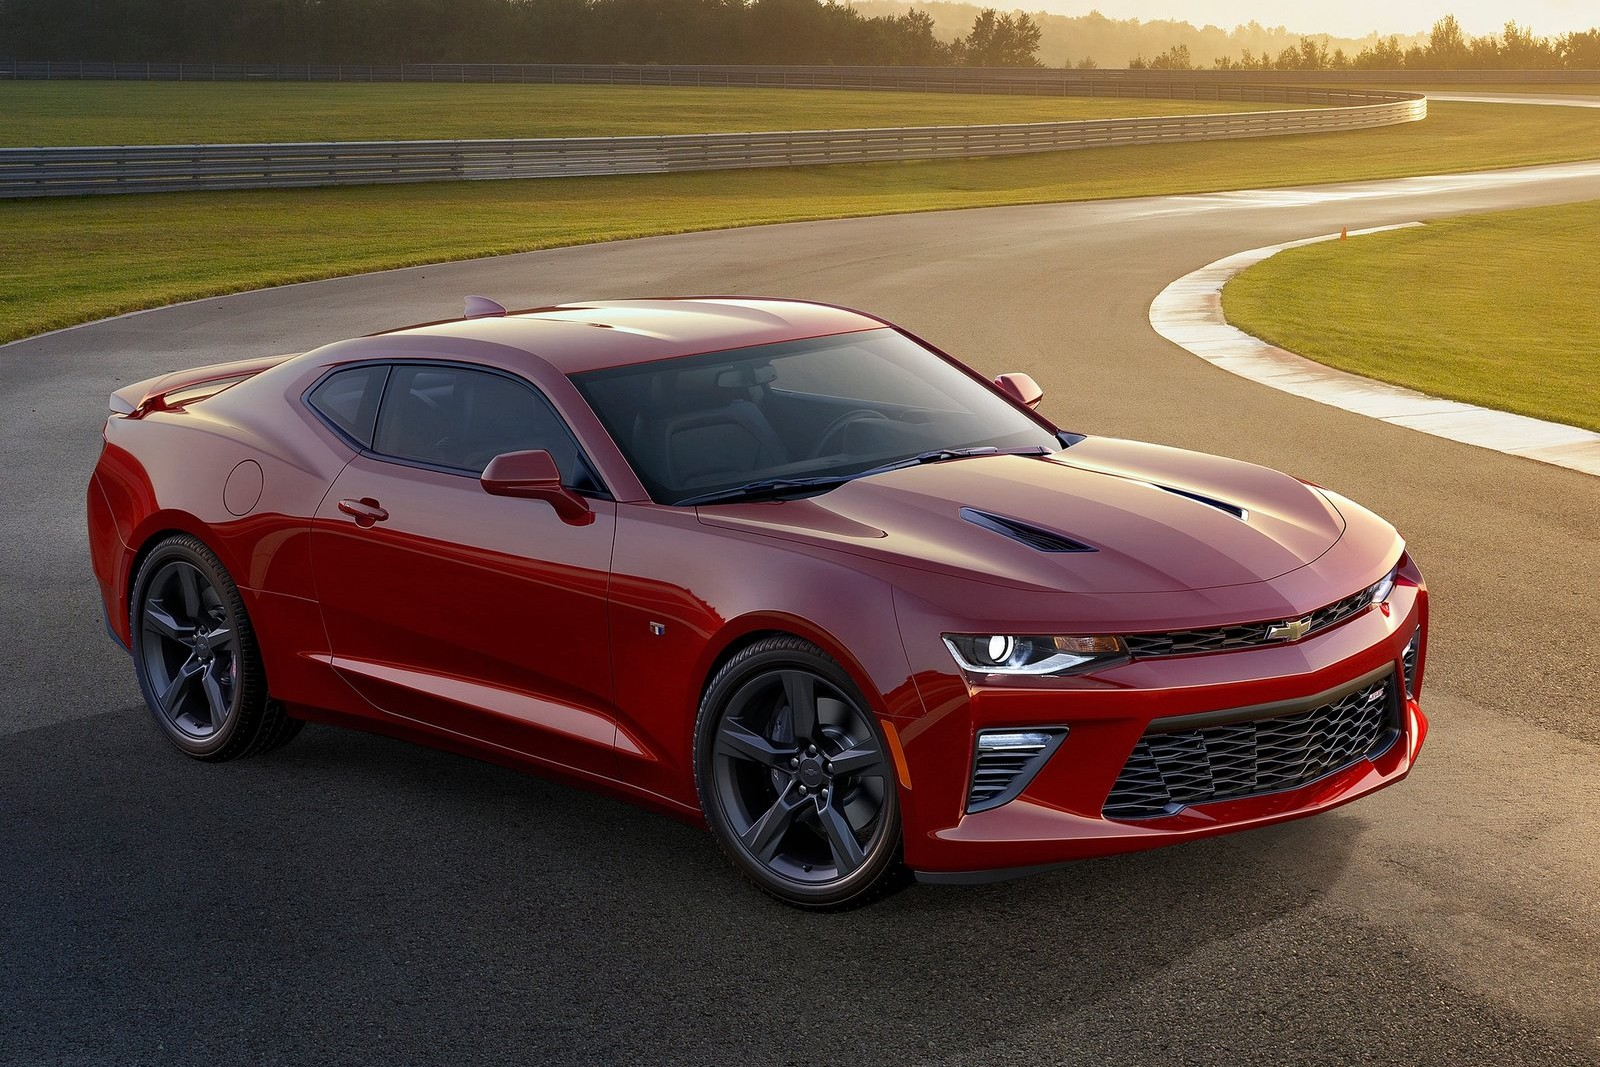 Chevrolet brought four new models to Montreal, the highlight being the all-new Camaro. It might get the most eyeballs...